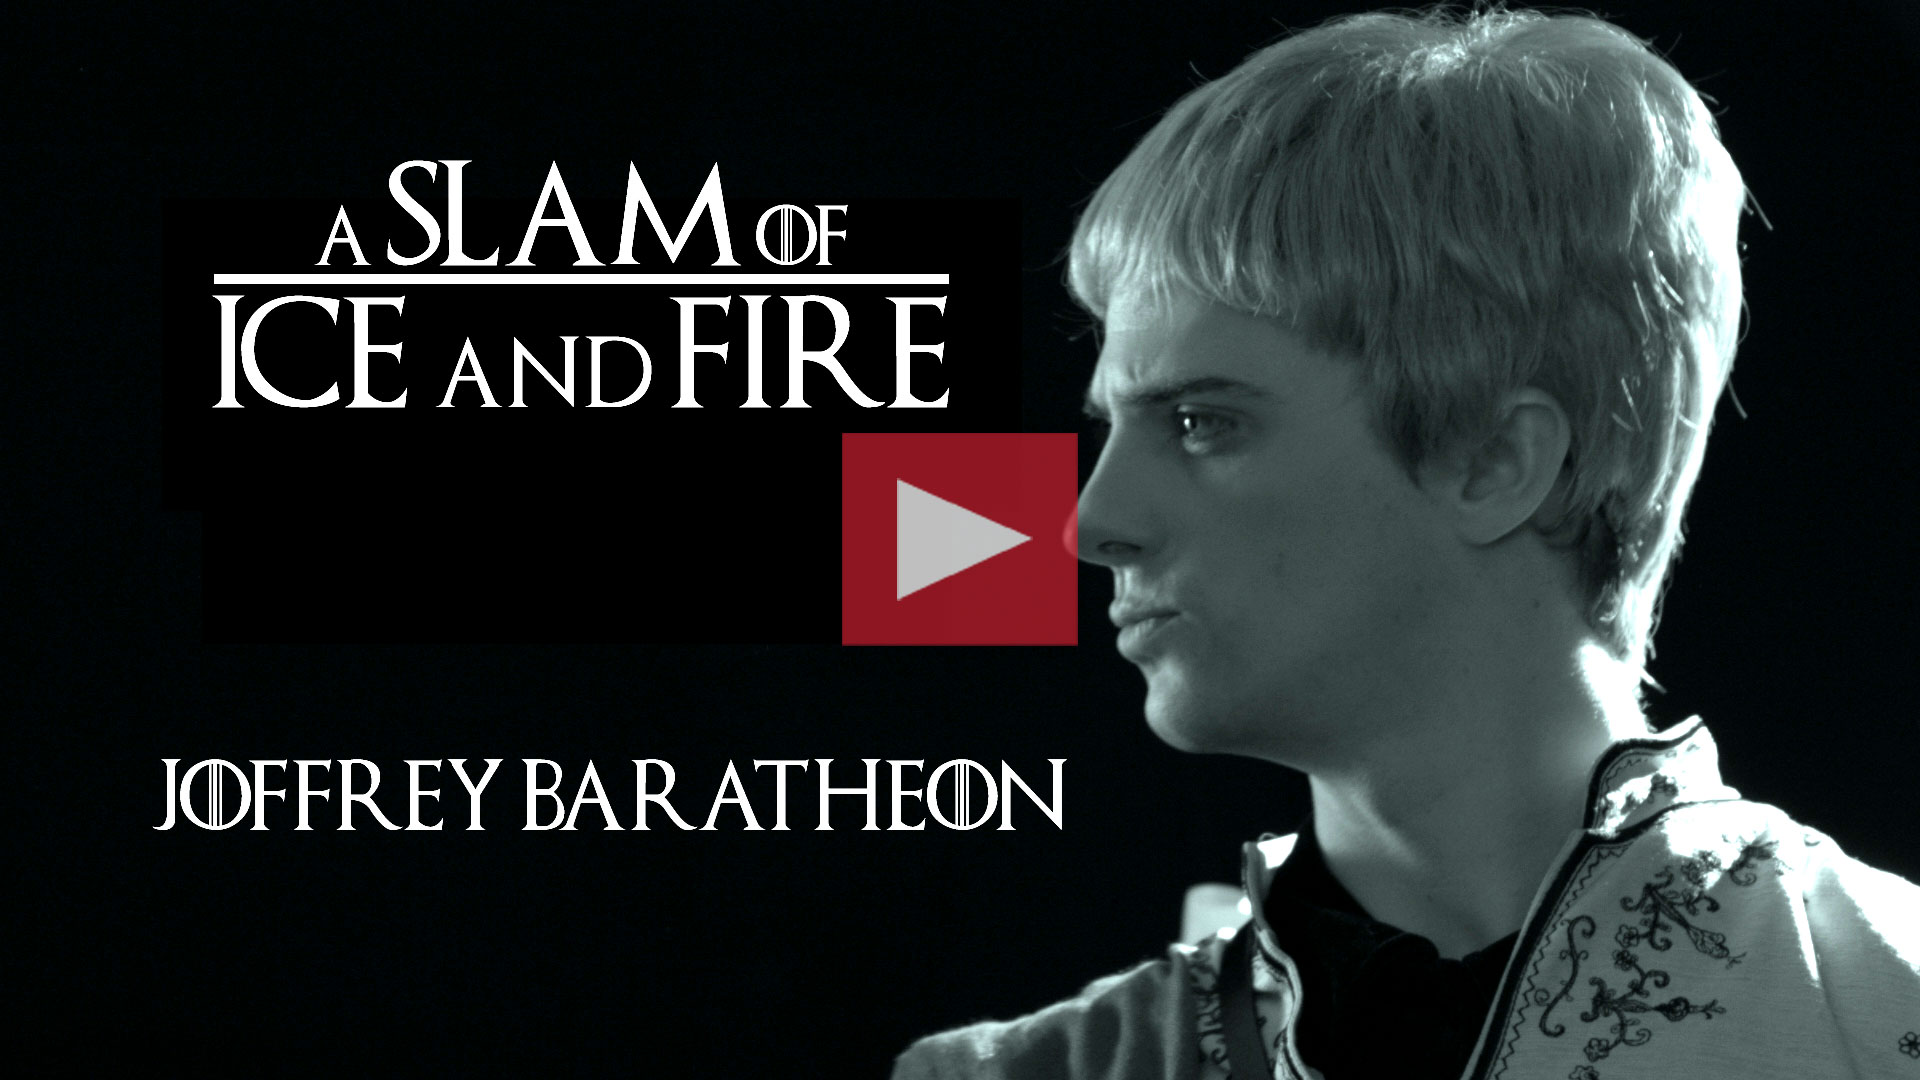 Joffrey Baratheon –  A Slam of Ice and Fire